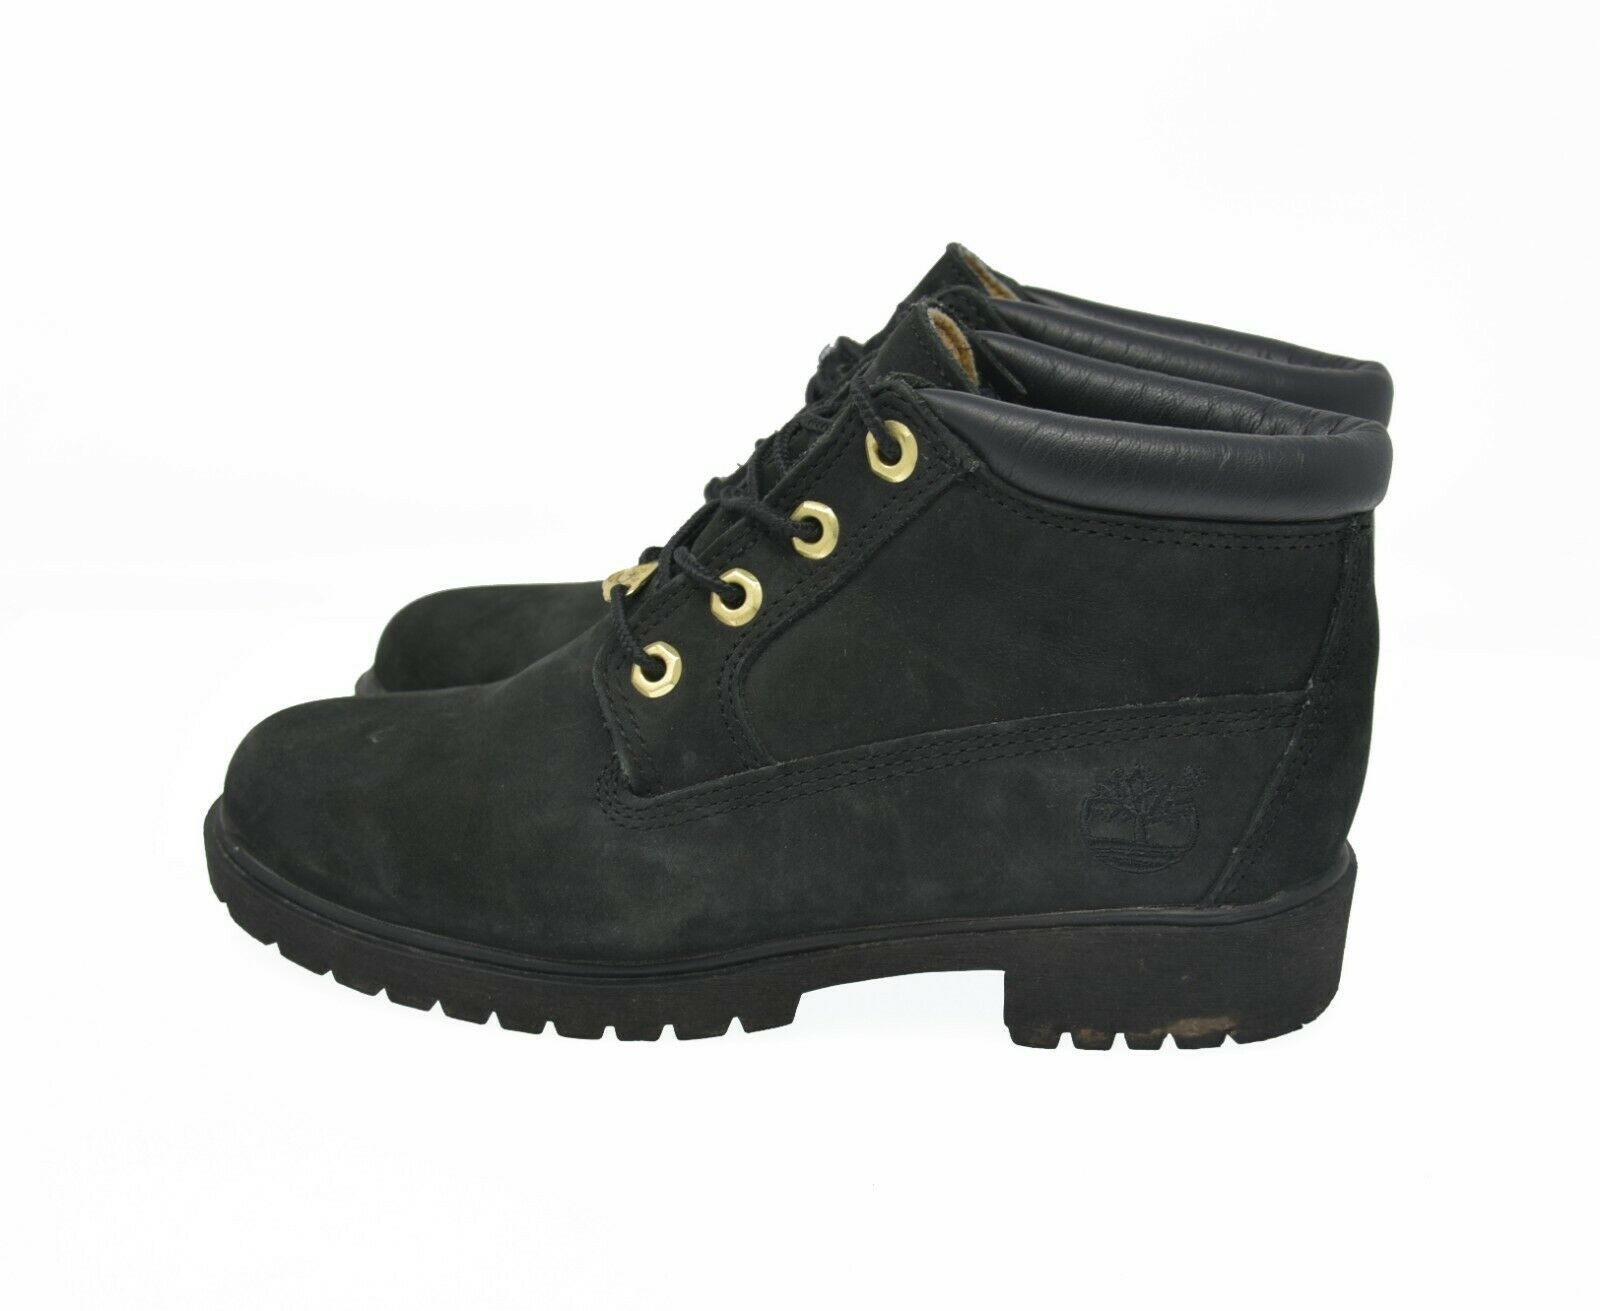 Timberland Sz 7M Black Suede Leather Boots and 50 similar items